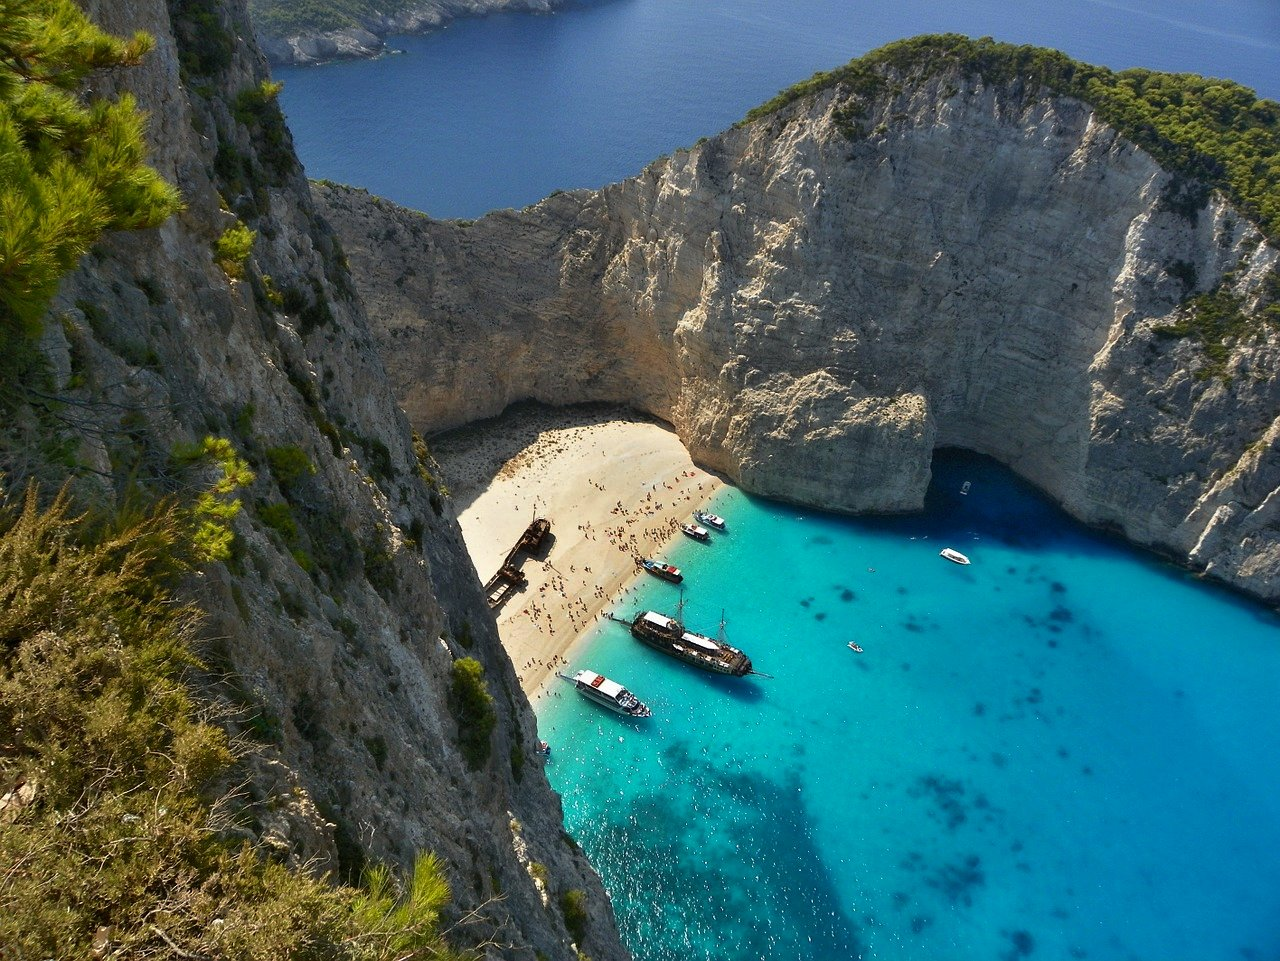 Navagio-Zakynthos-Greece-Travel